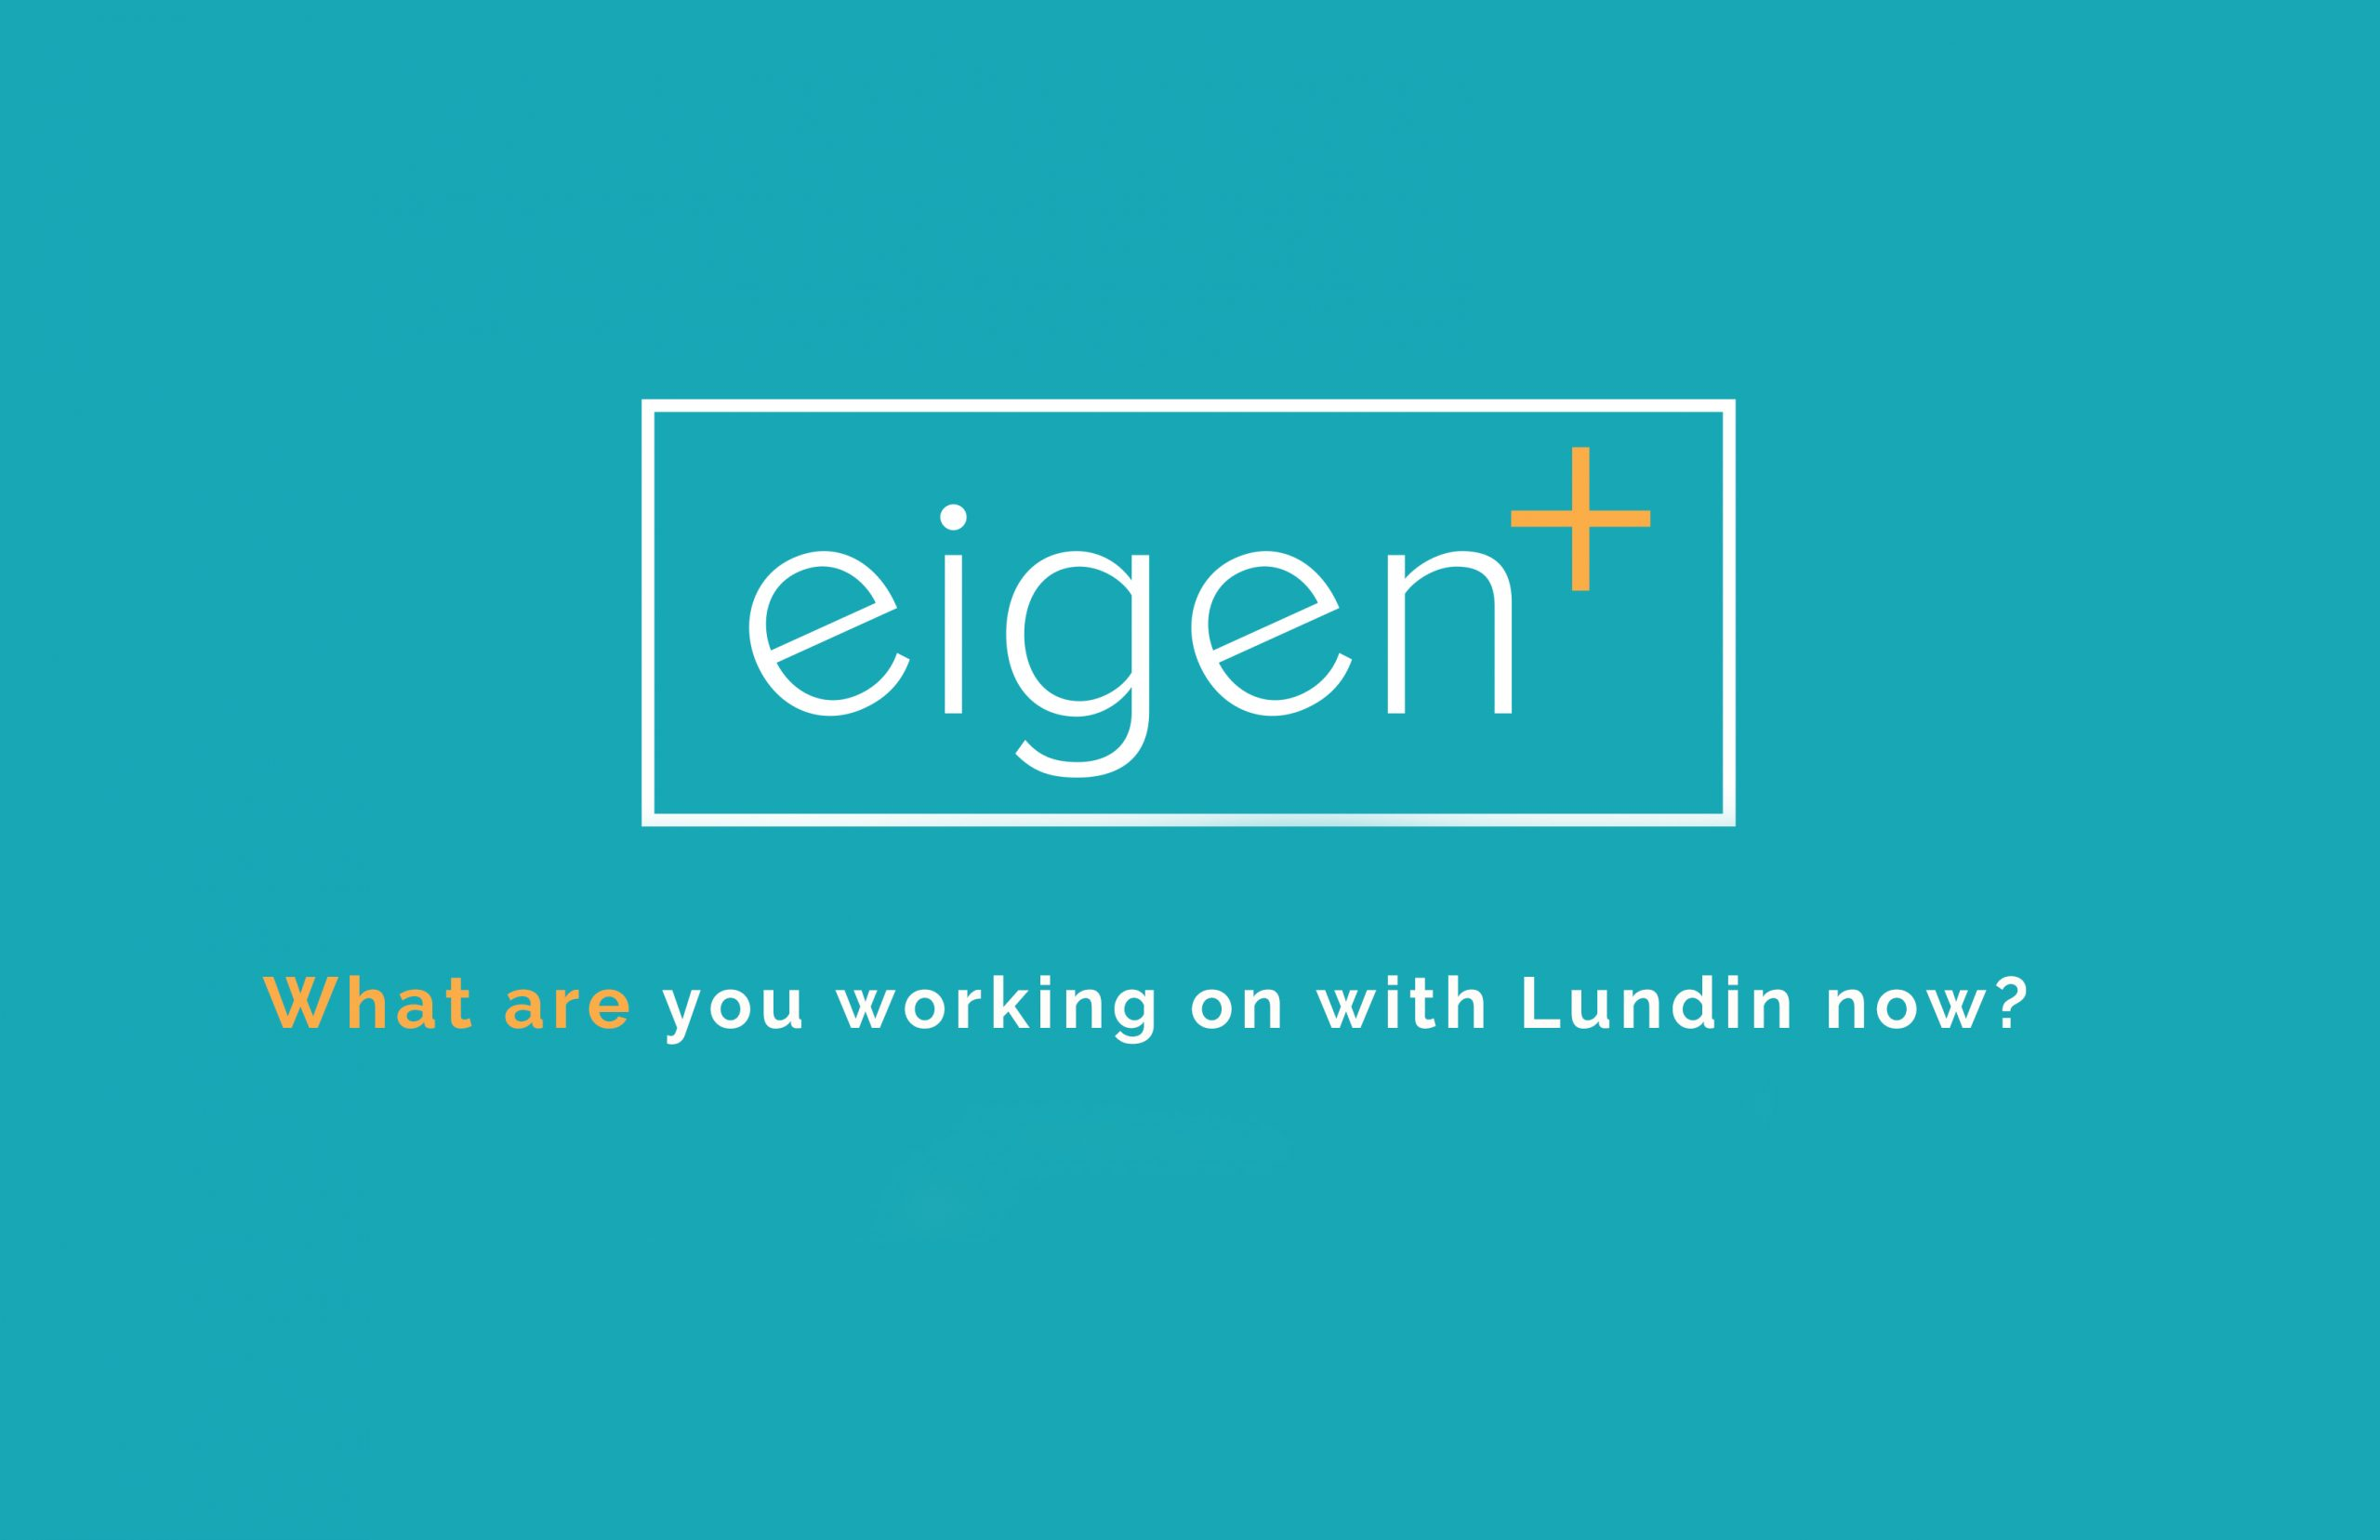 What are you working on with Lundin now?